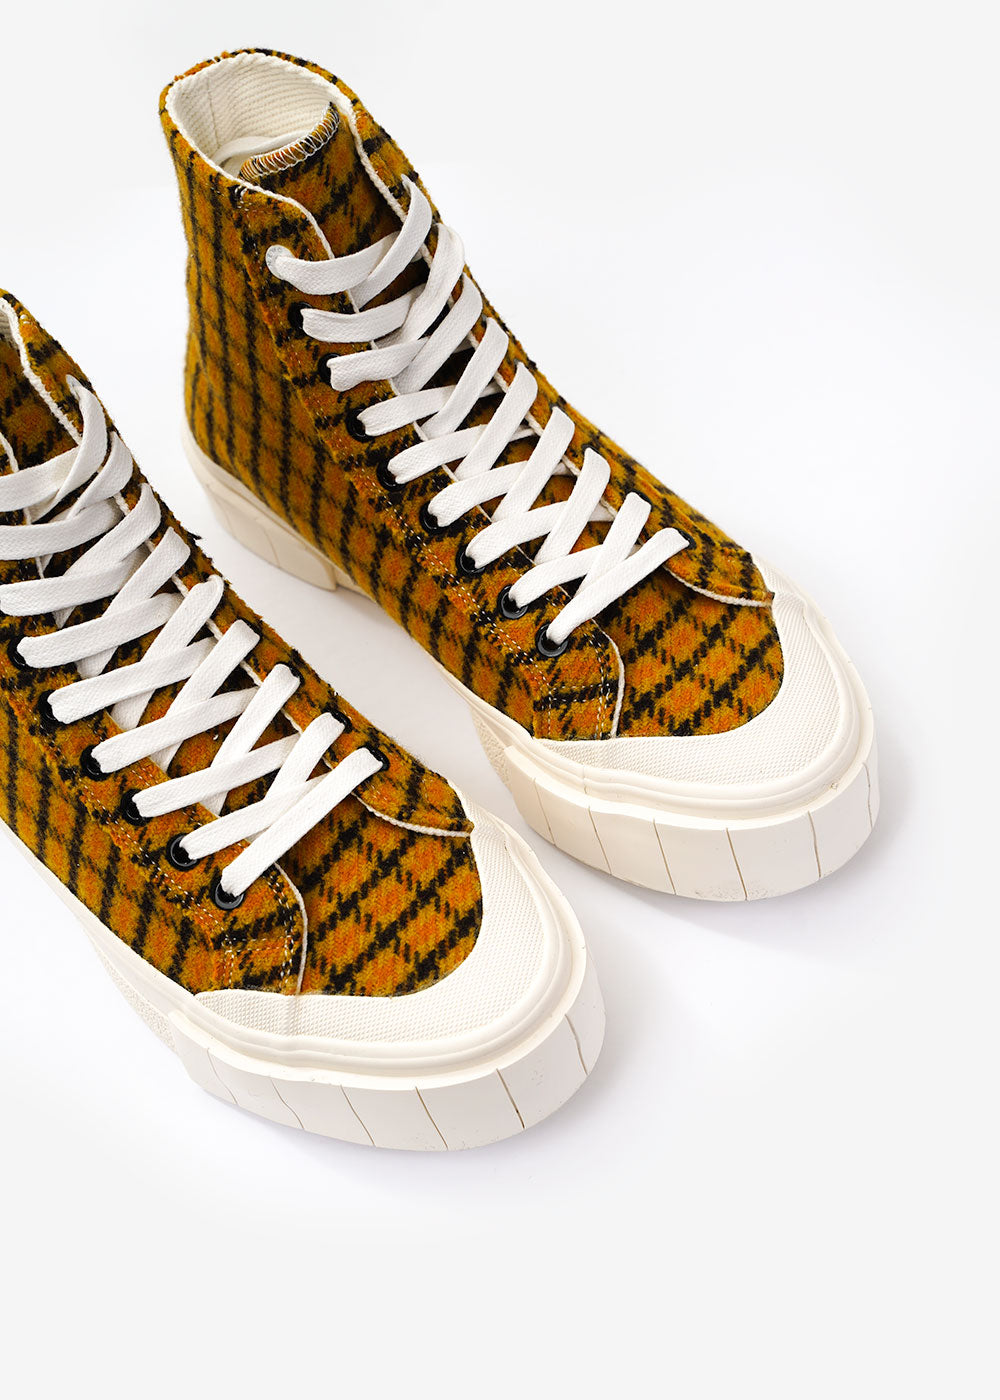 GOOD NEWS Mustard Check Softball 2 Hi Sneakers — Shop sustainable fashion and slow fashion at New Classics Studios